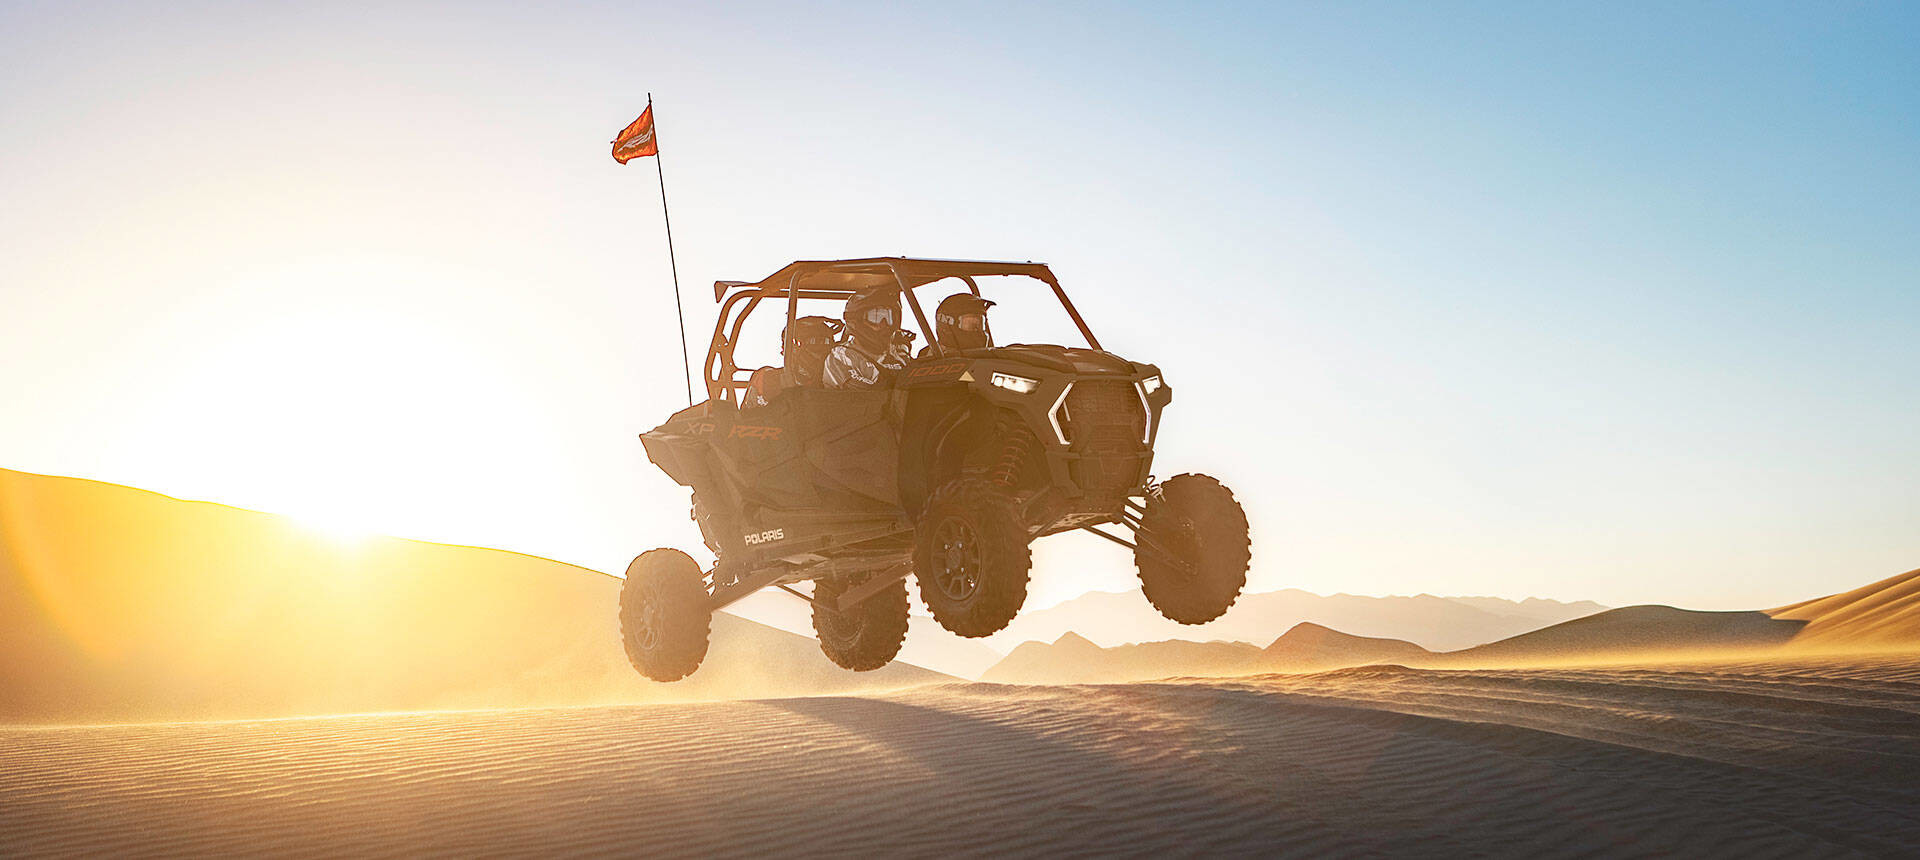 2020 RZR® XP 4 1000 Limited Edition Instagram image 9